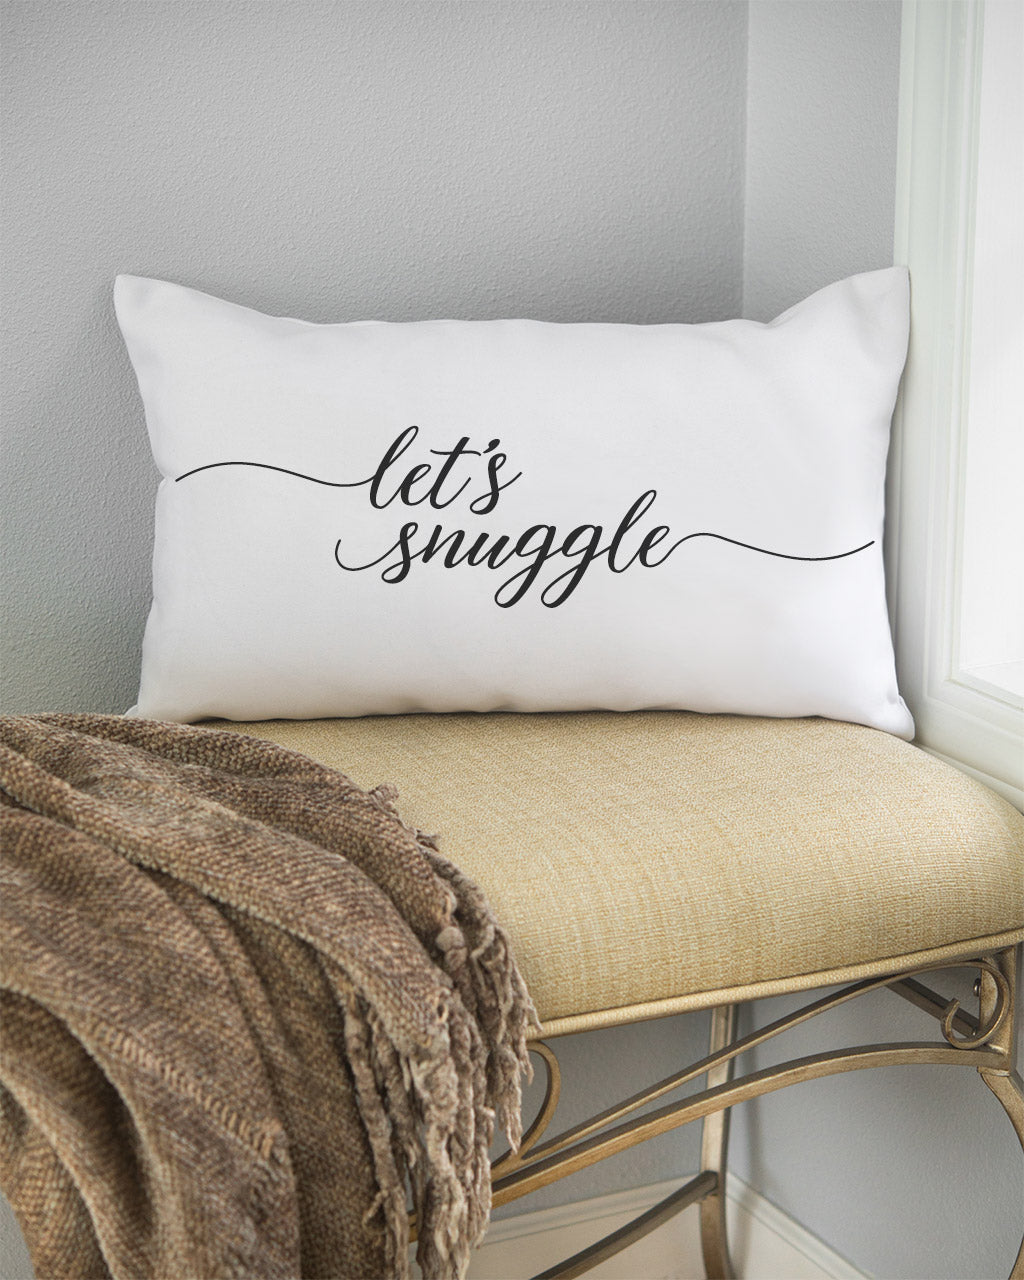 let's snuggle artisan lumbar pillow